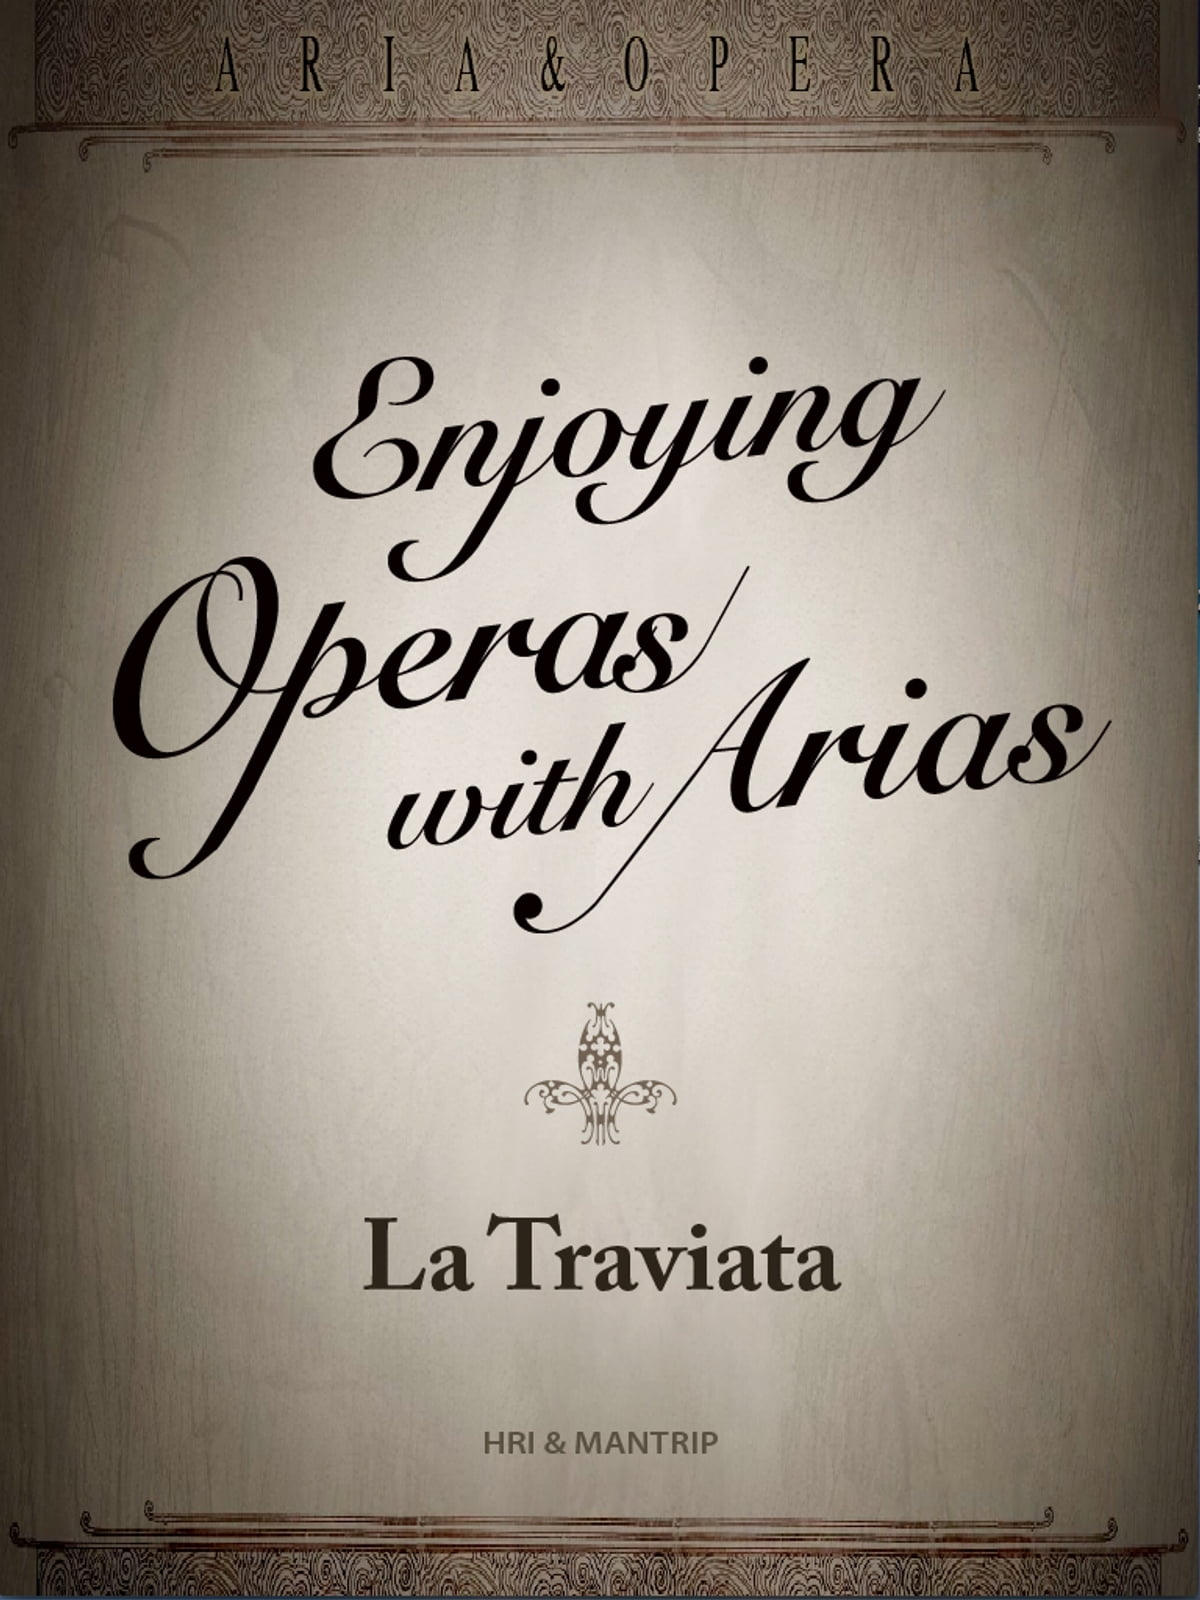 La Traviata, a sad love story ended by social status ebook by Hyundai  Research Institute - Rakuten Kobo